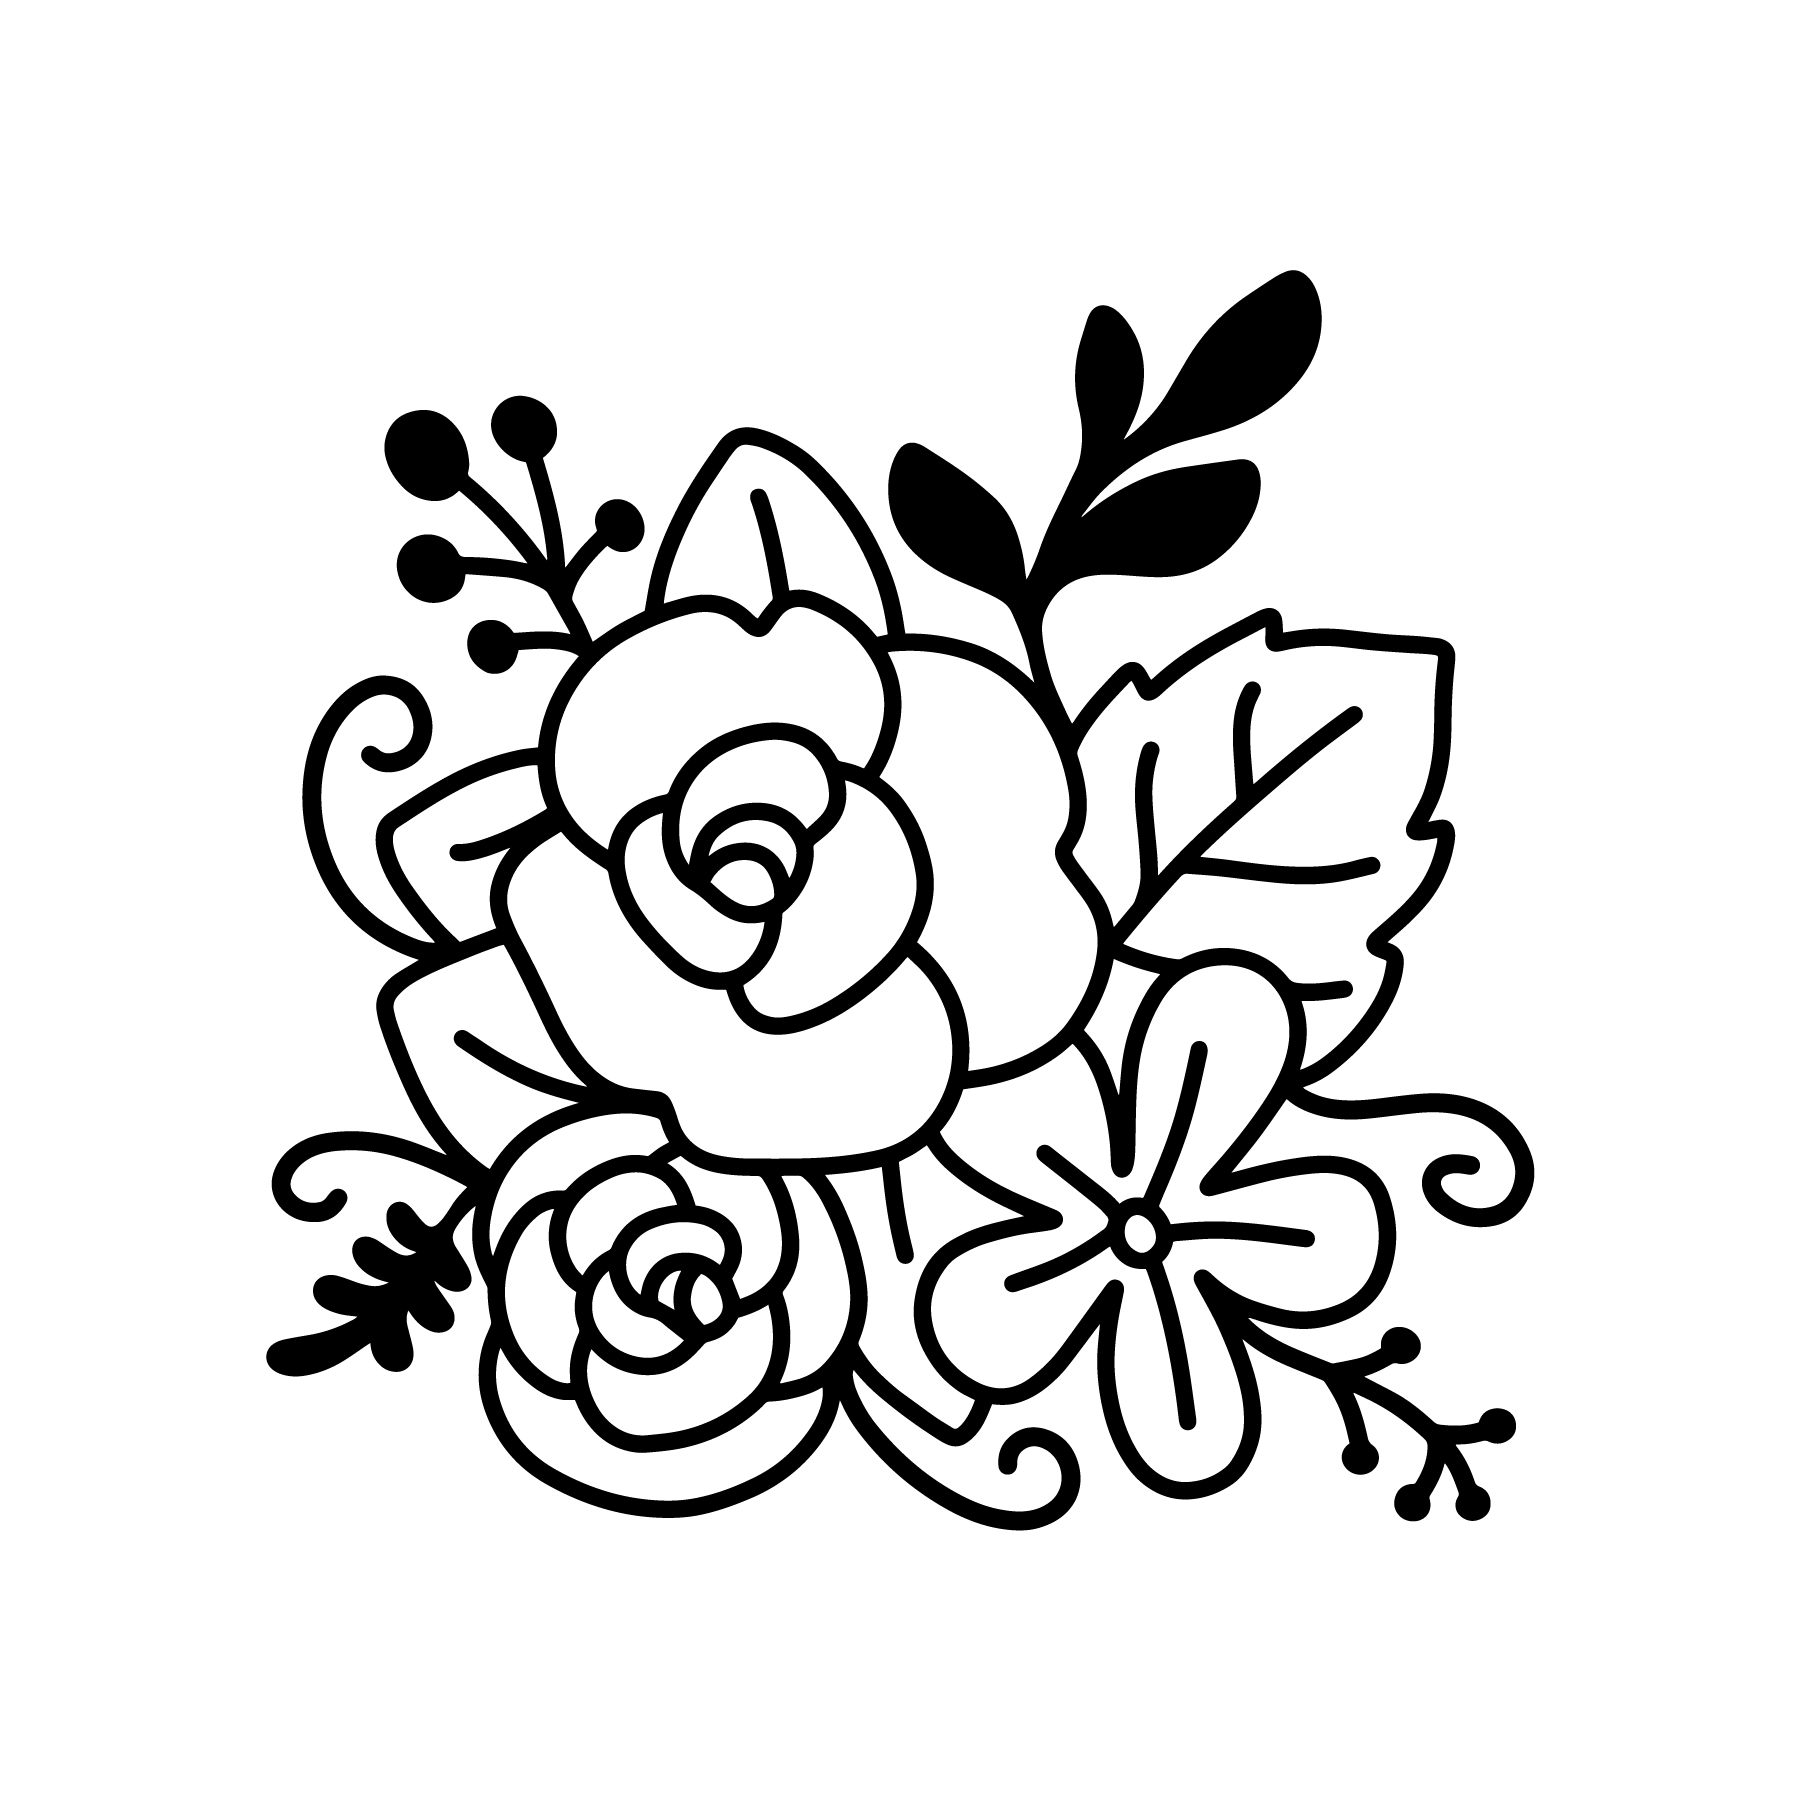 Pin by Sherry Bradley on Cricut Flower svg files, Flower